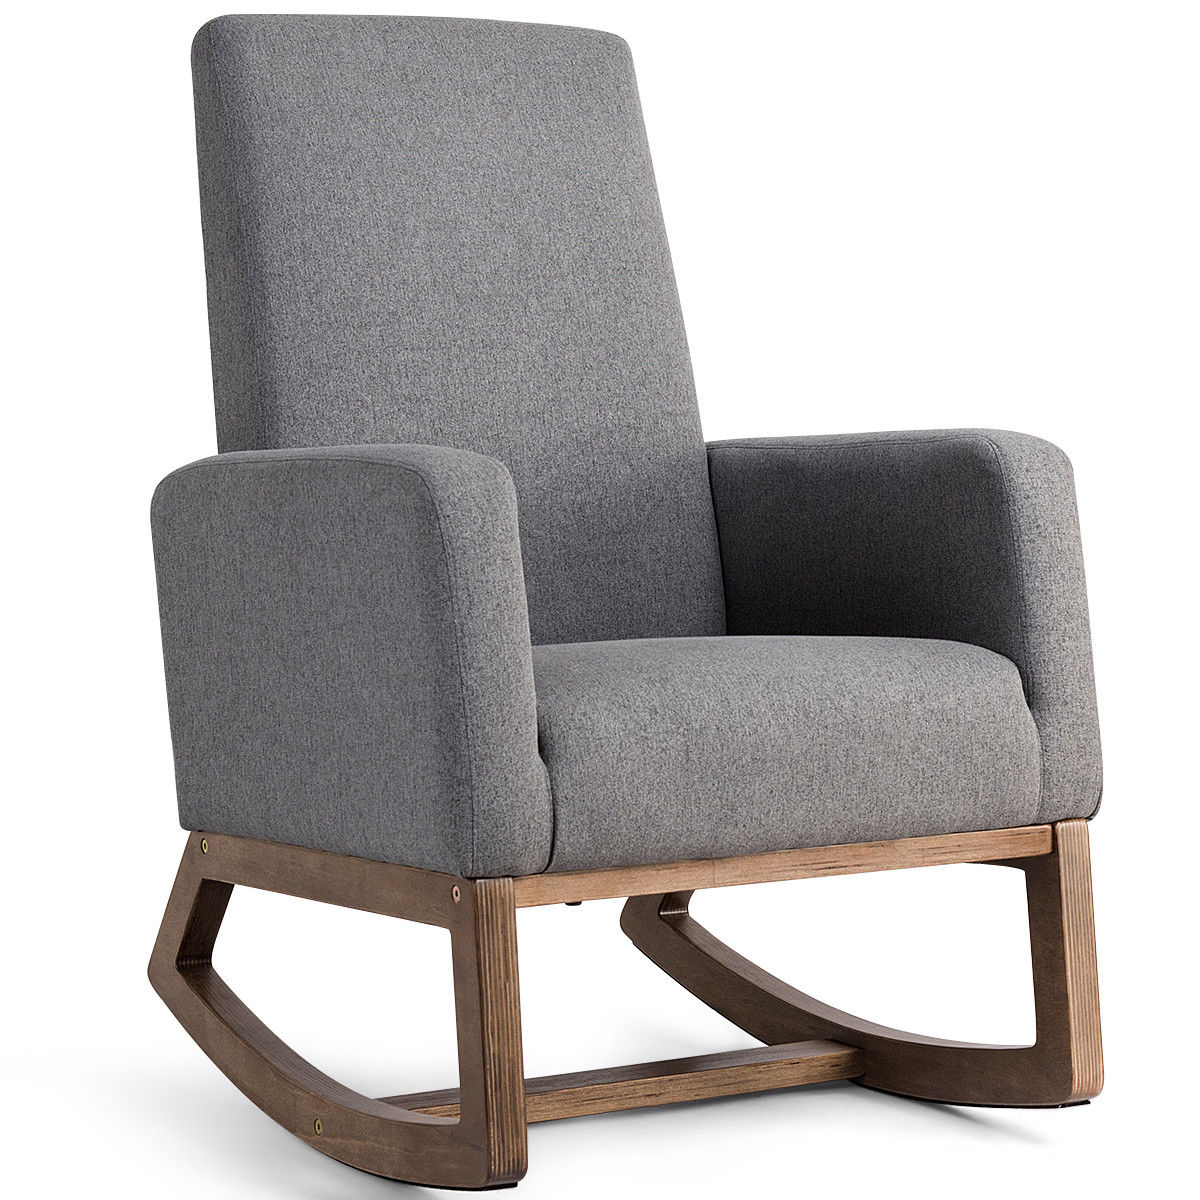 Costway: Costway Mid Century Retro Modern Fabric Upholstered Rocking Chair Relax Rocker Gray | Rakuten With Mid Century Fabric Rocking Chairs (View 6 of 20)